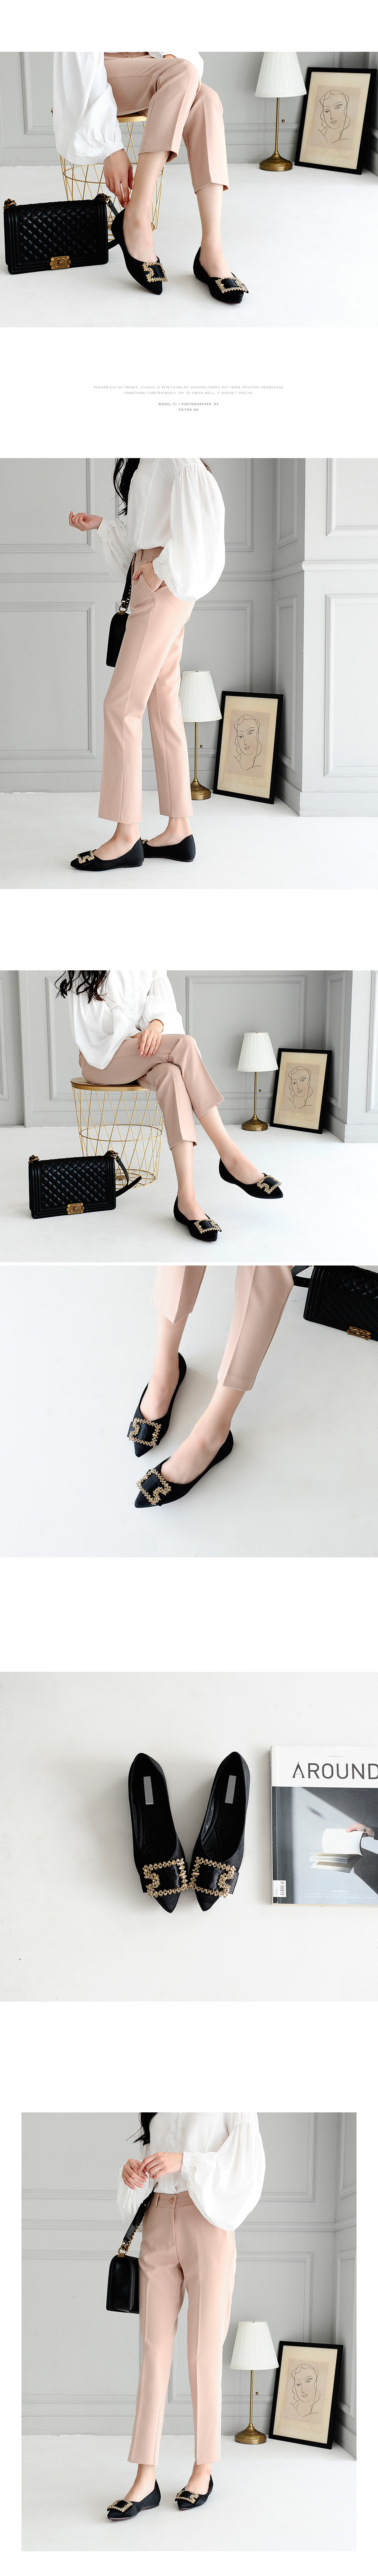 Leanine Height Flat Shoes 2cm